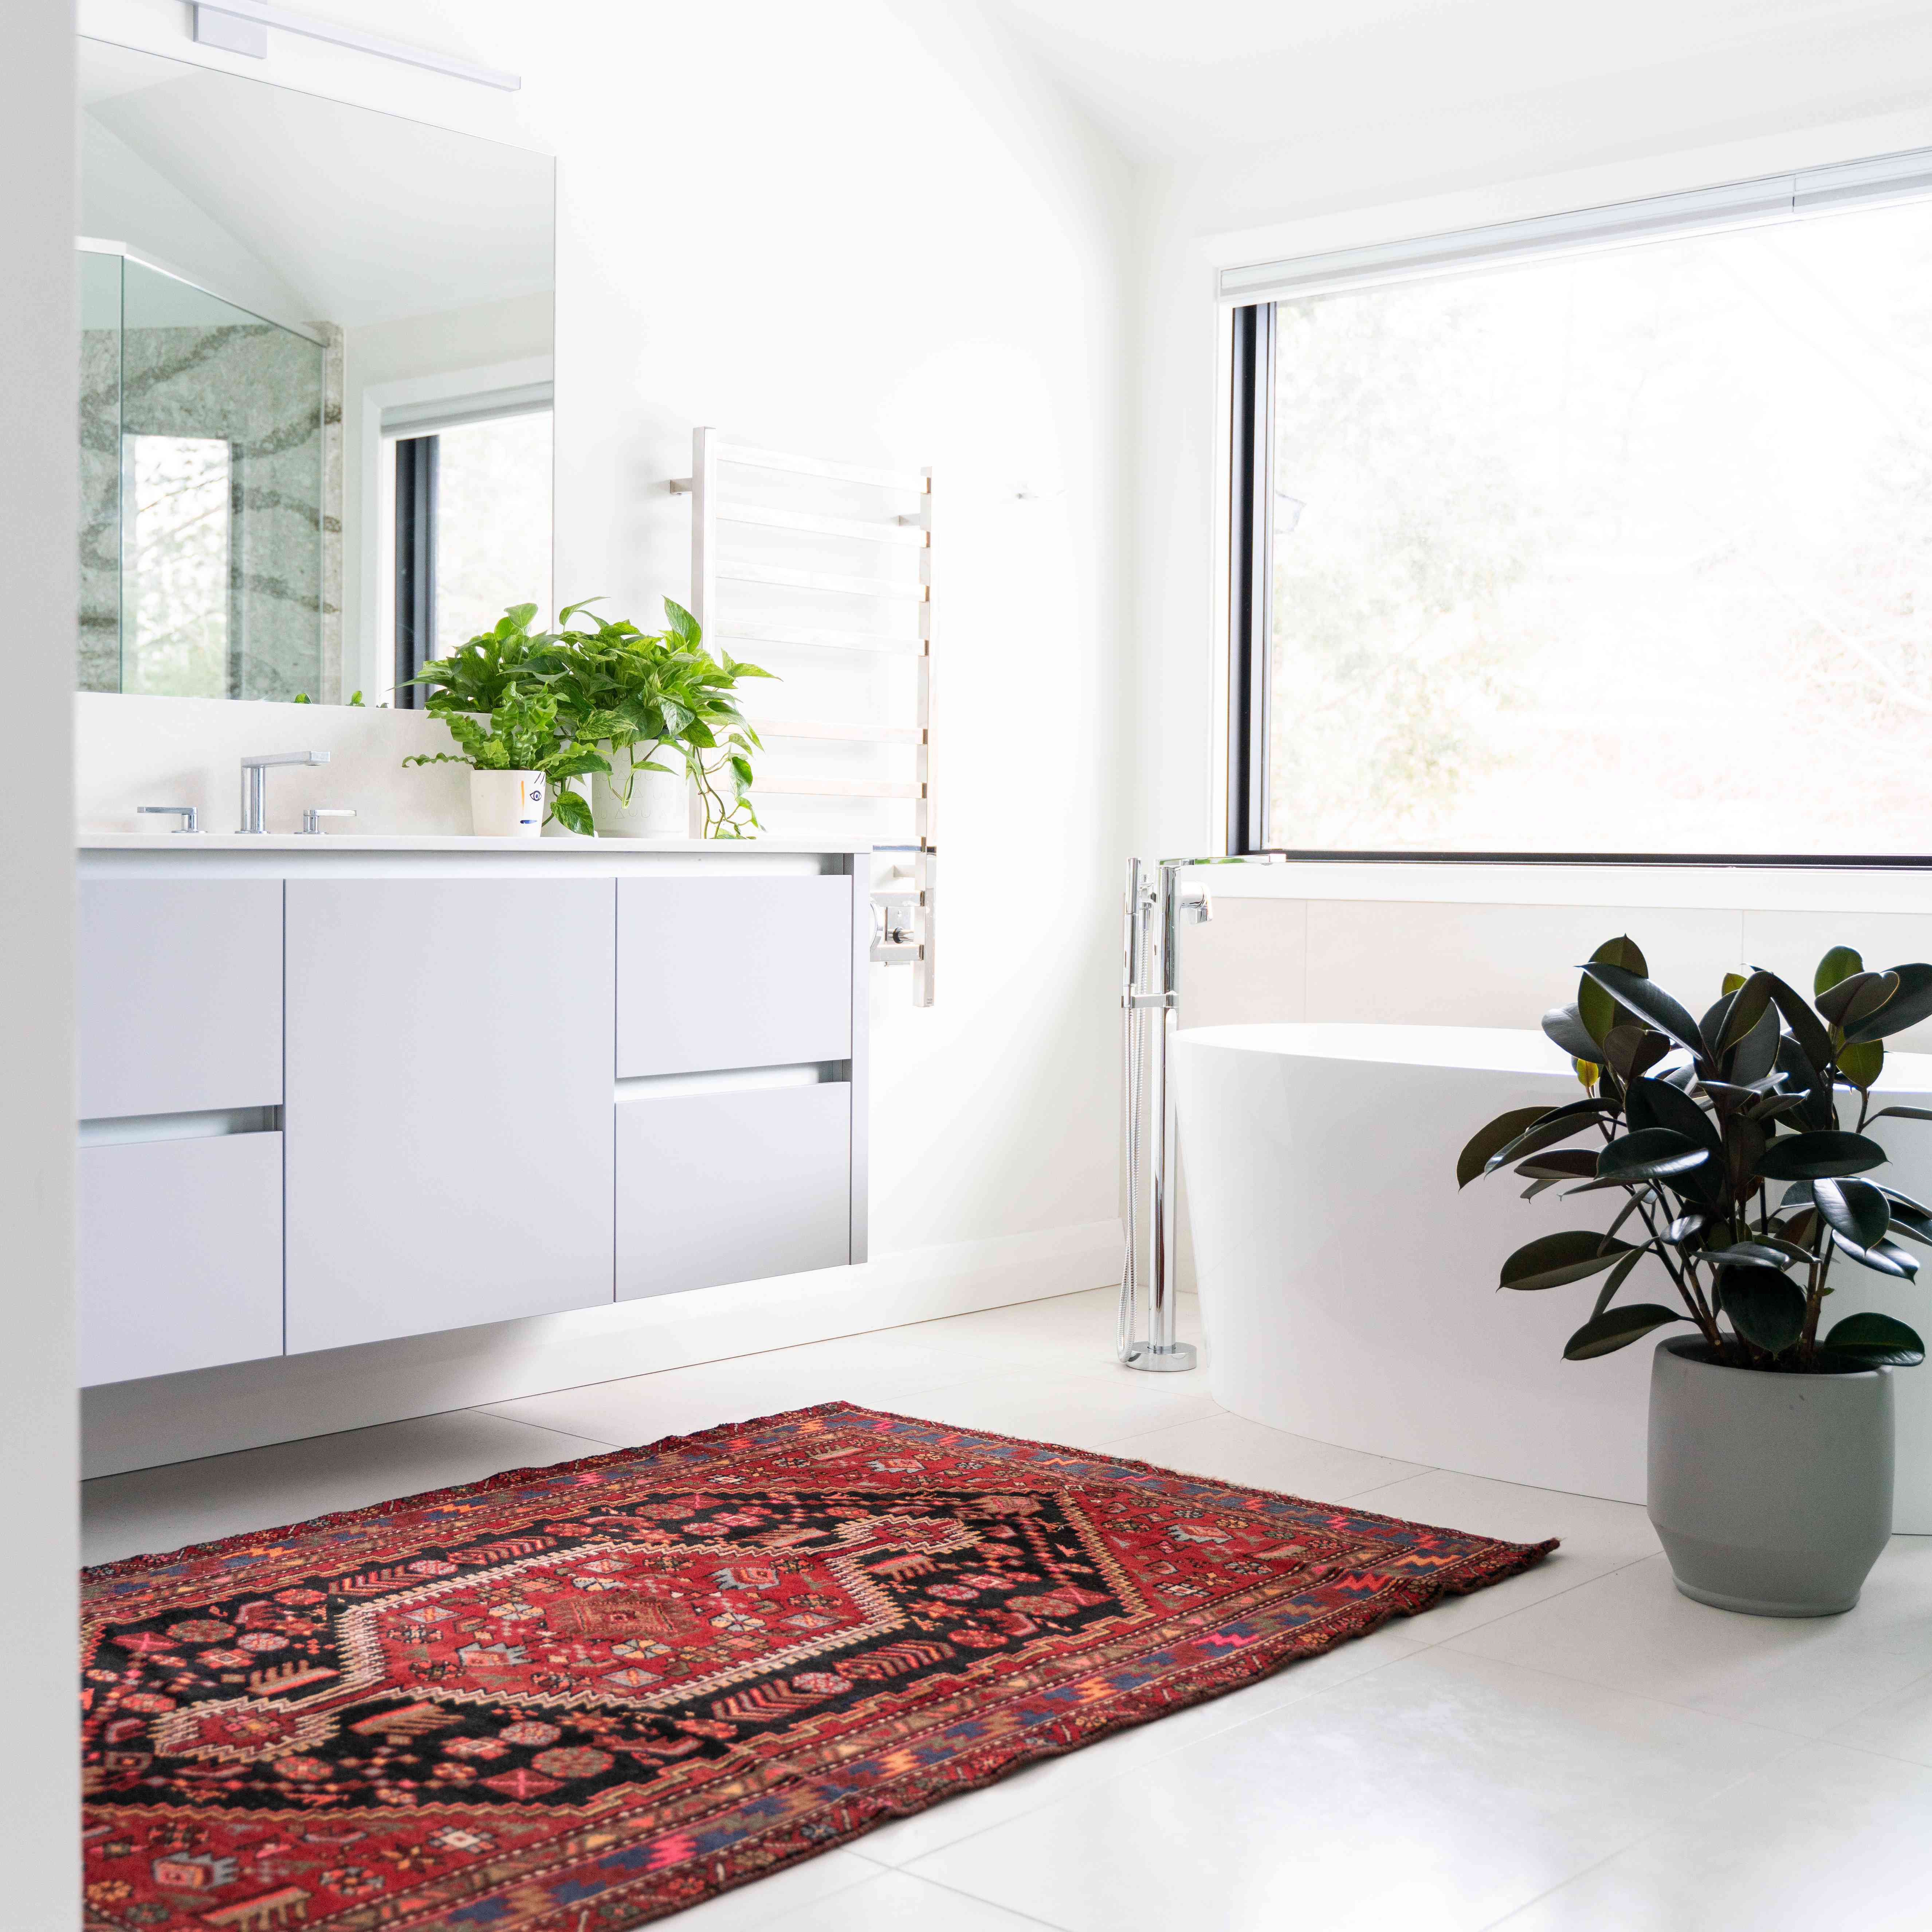 White spacious bathroom with a red rug and plants